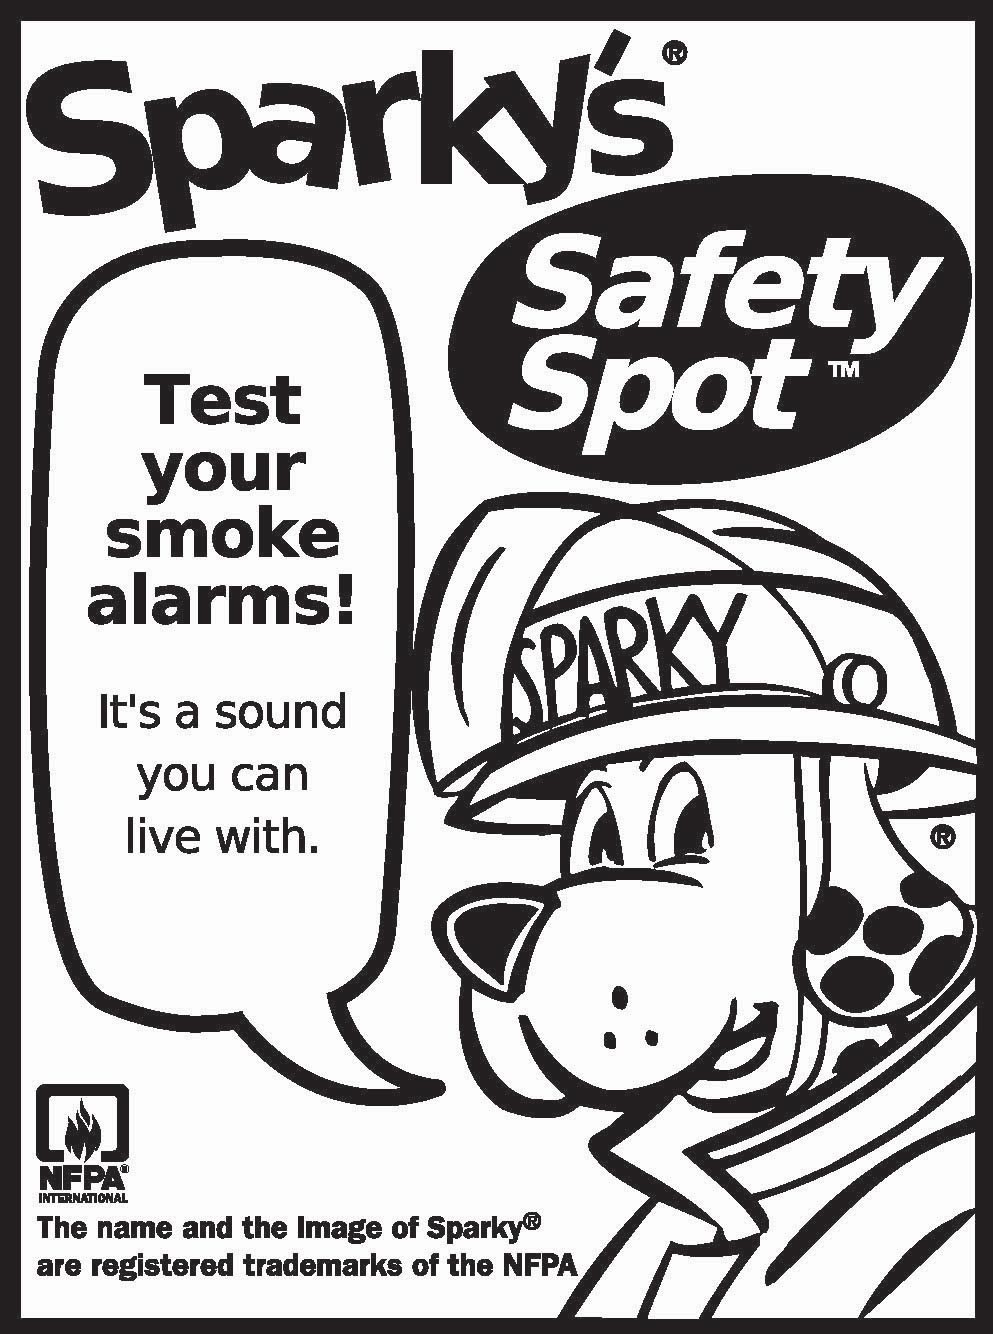 Coloring Pages Fire Dog Coloring Page dalmatian fire dog coloring pages az sparky the safety pages